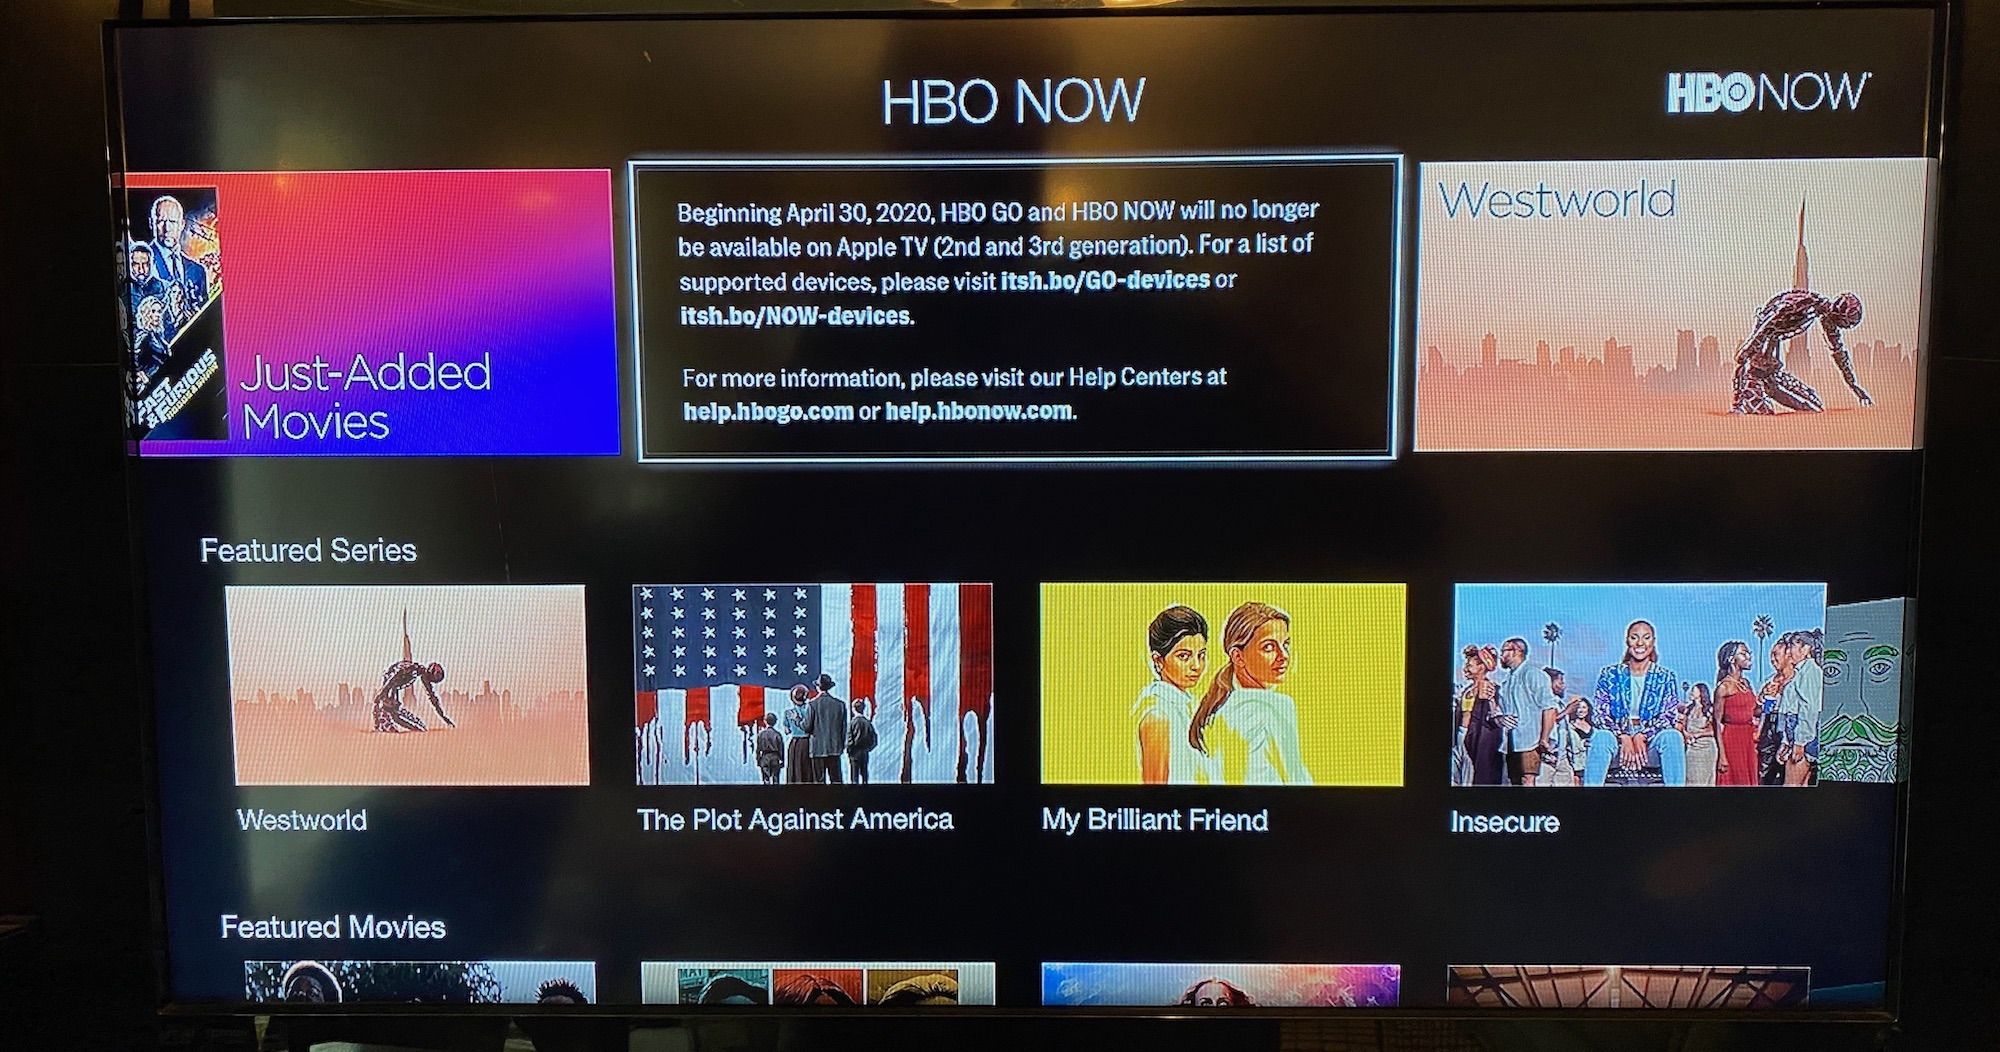 photo of HBO GO and HBO NOW Will No Longer Be Available on 2nd and 3rd Gen Apple TVs Starting April 30 image